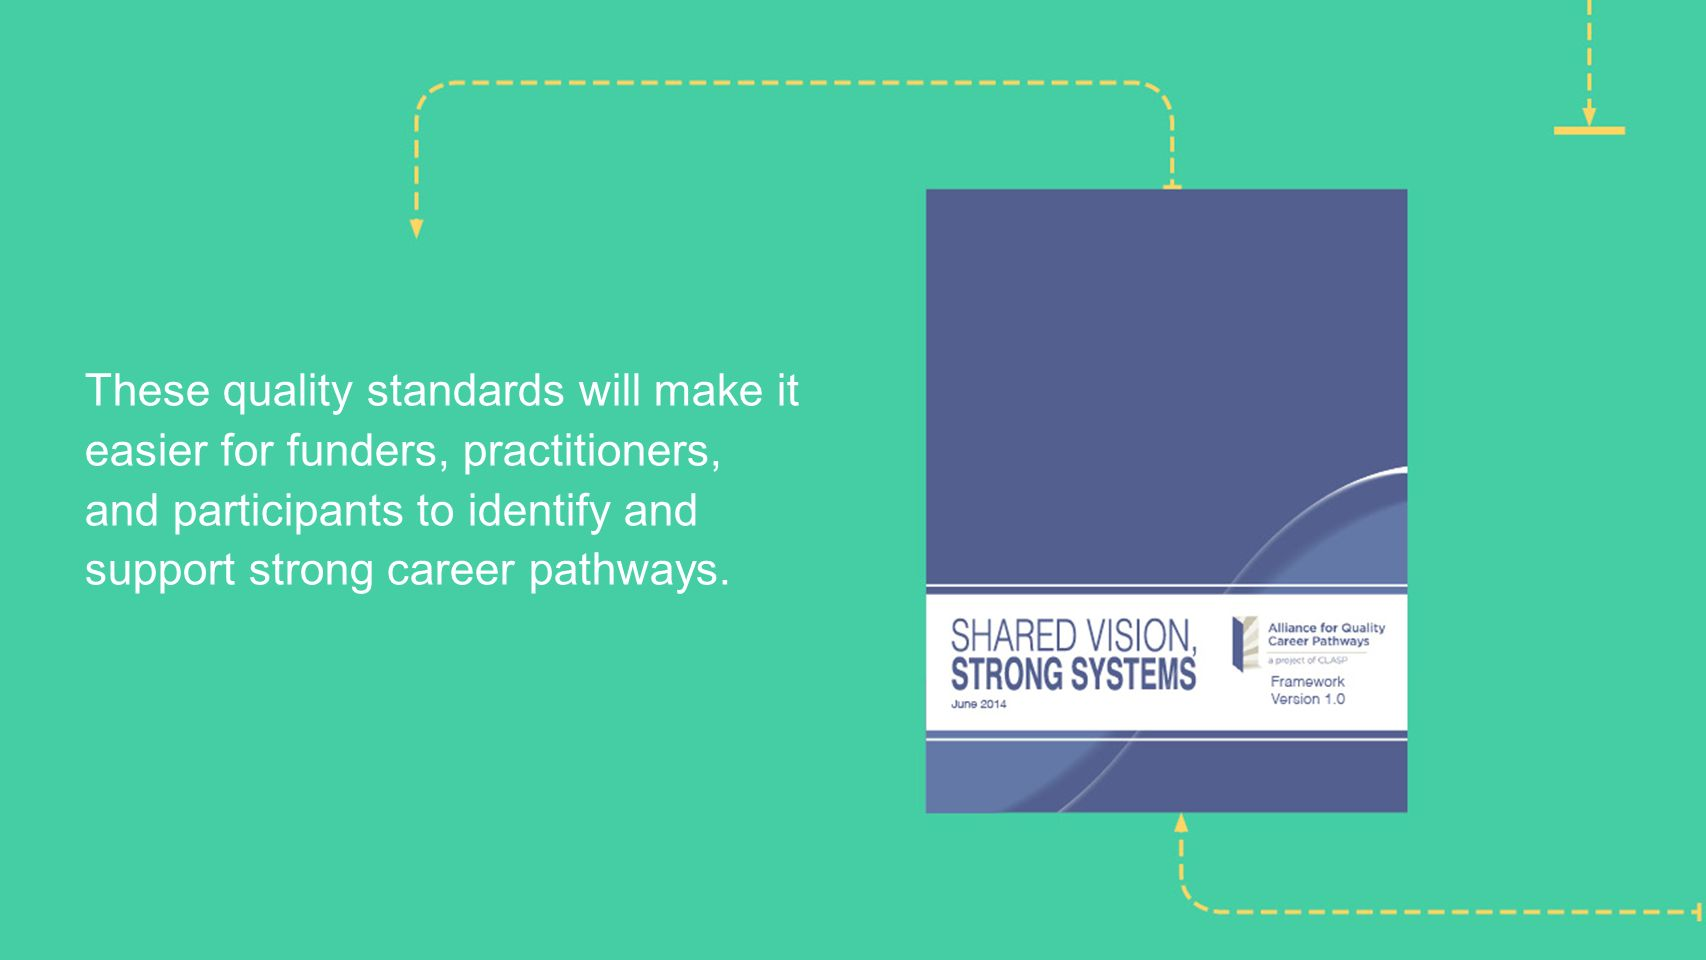 These quality standards will make it easier for funders, practitioners, and participants to identify and support strong career pathways.